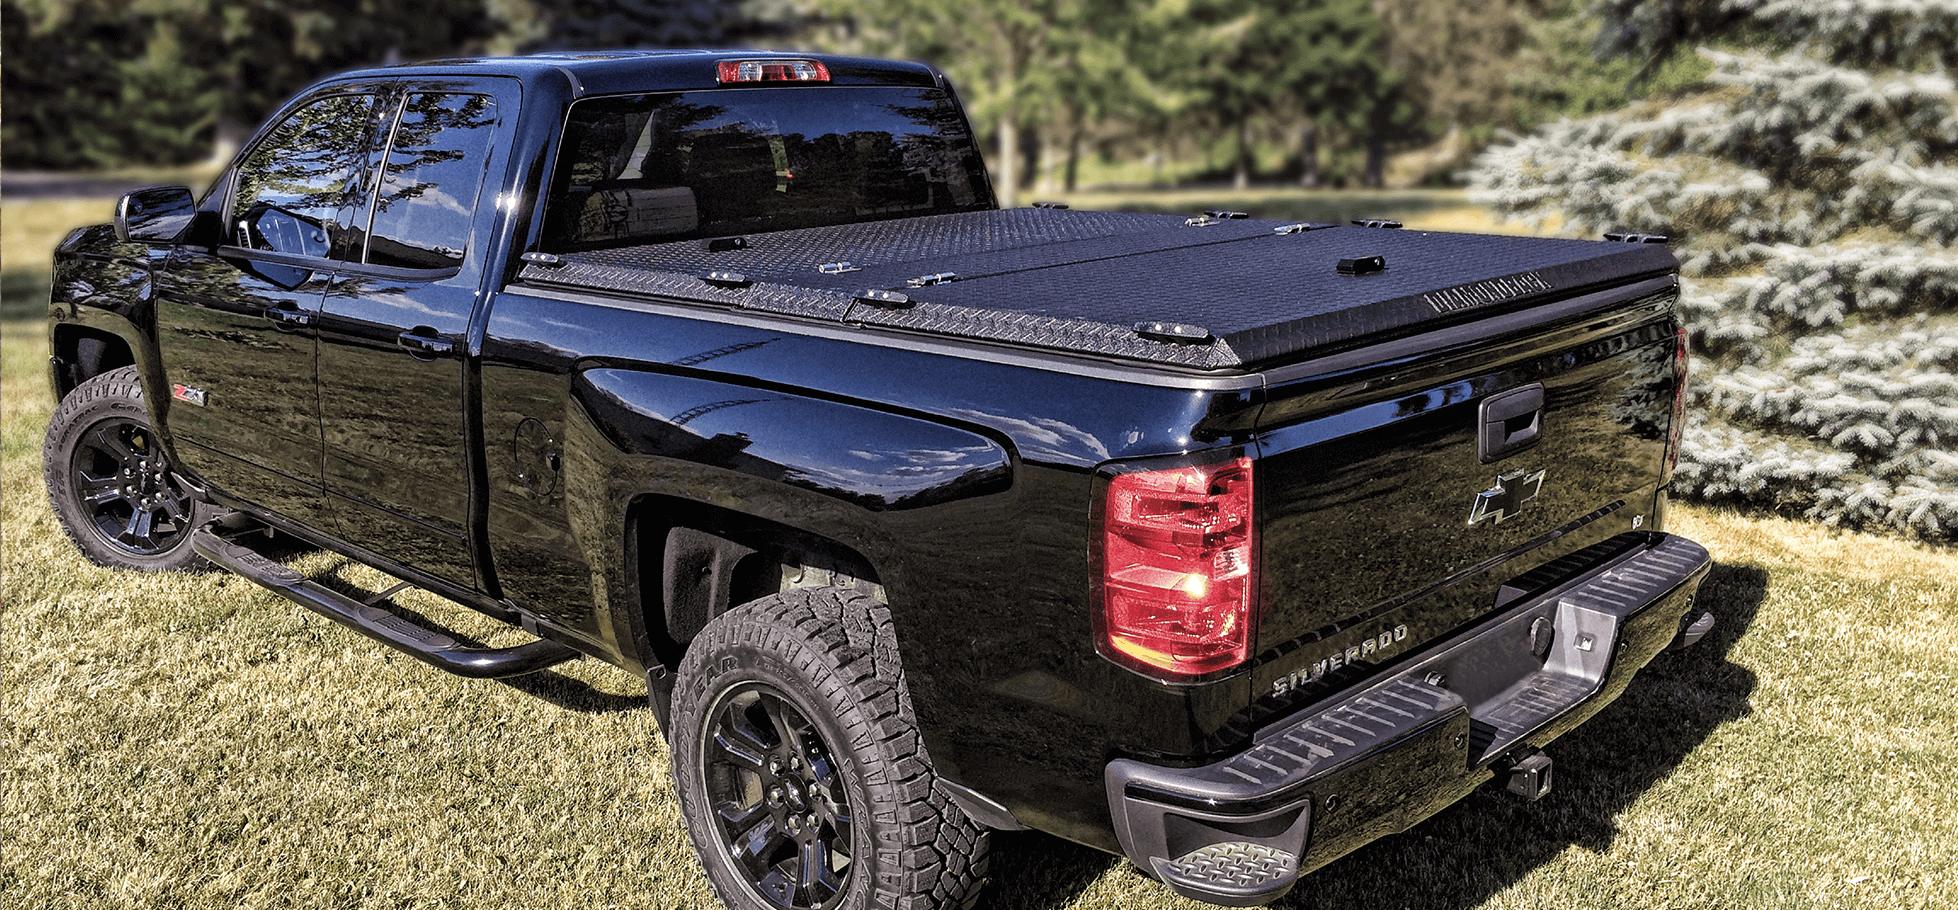 Diamondbackhd Truck Covers Pickup Bed Covers Truck Bed Covers